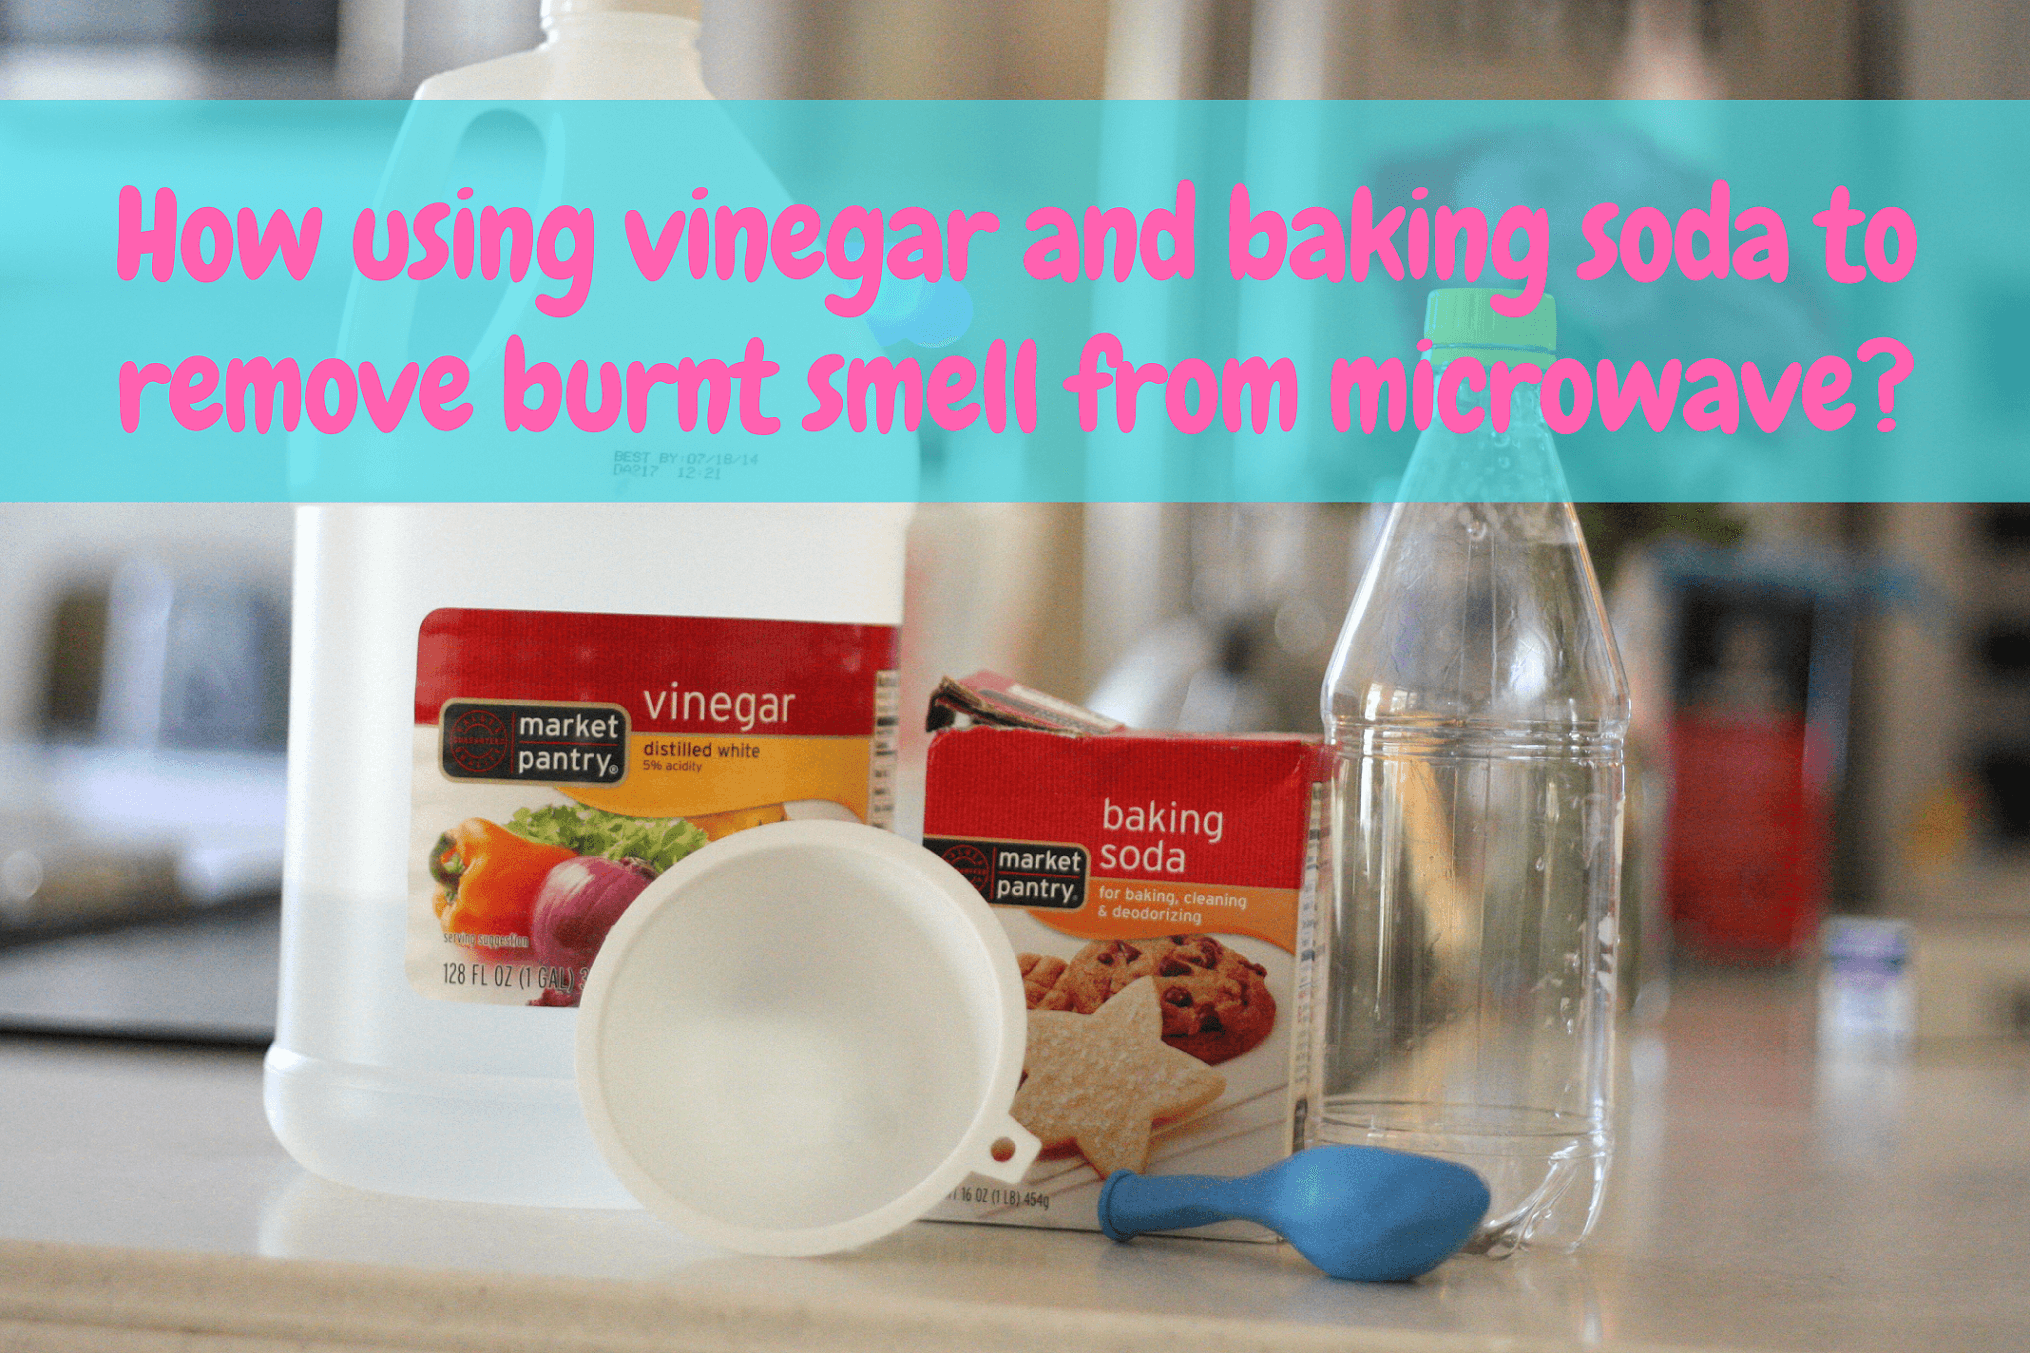 How using vinegar and baking soda to remove burnt smell from microwave-